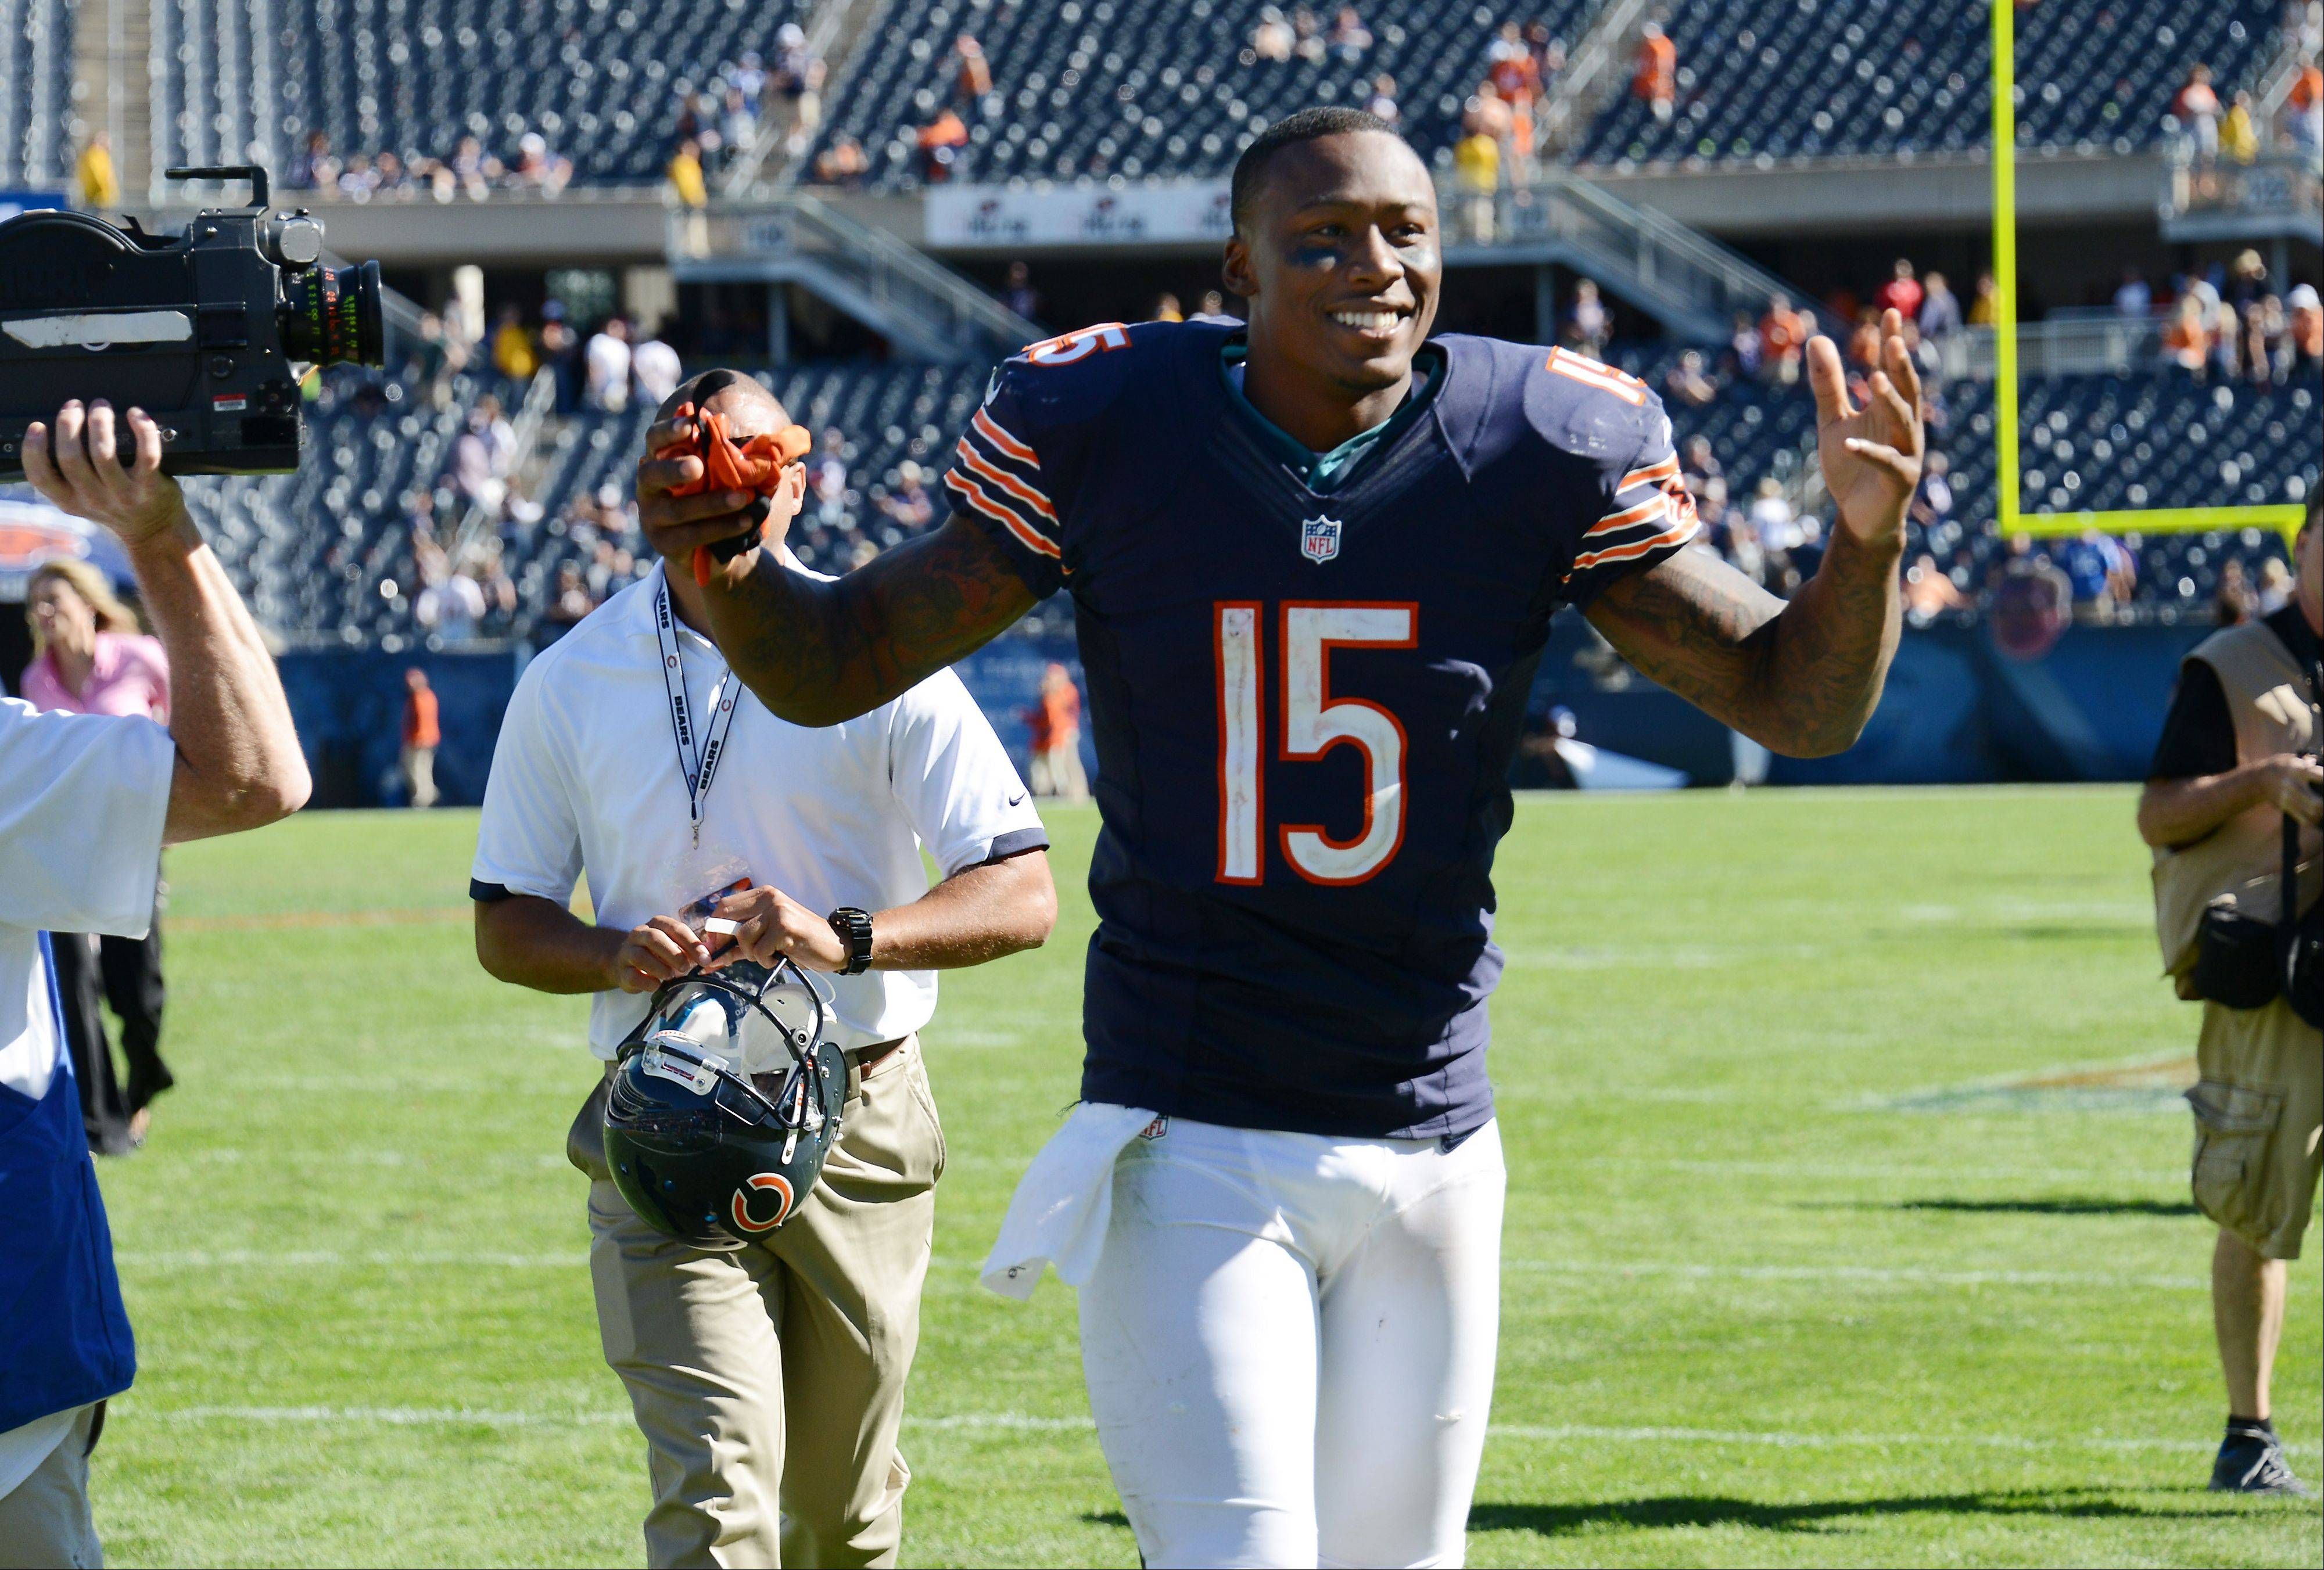 Bears wide receiver Brandon Marshall celebrates Sunday's victory over the Indianapolis Colts at Soldier Field.